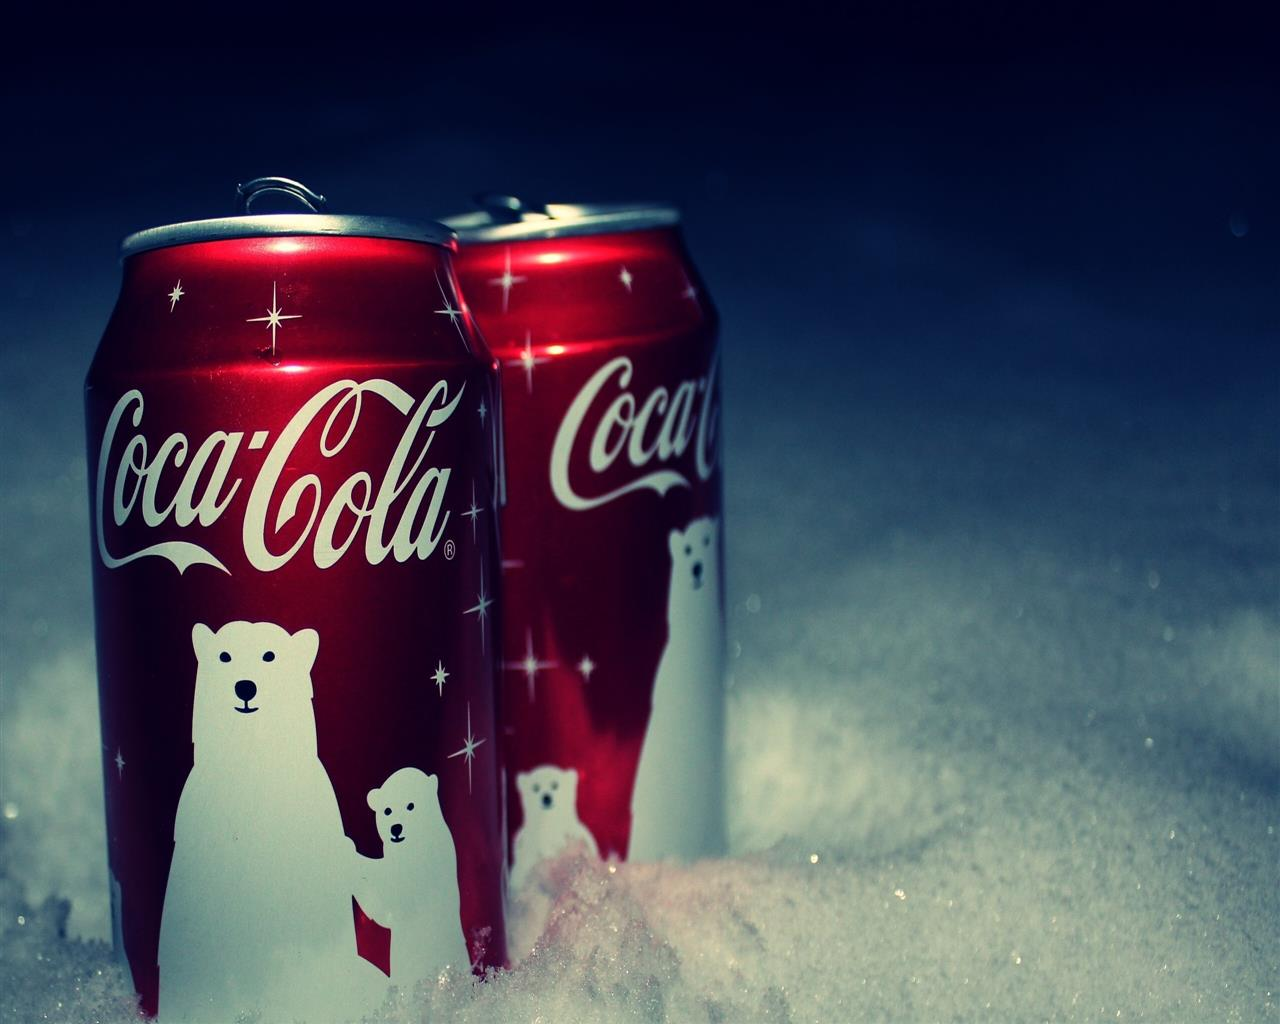 1280x1024 Coca Cola on Christmas Holiday Wallpaper